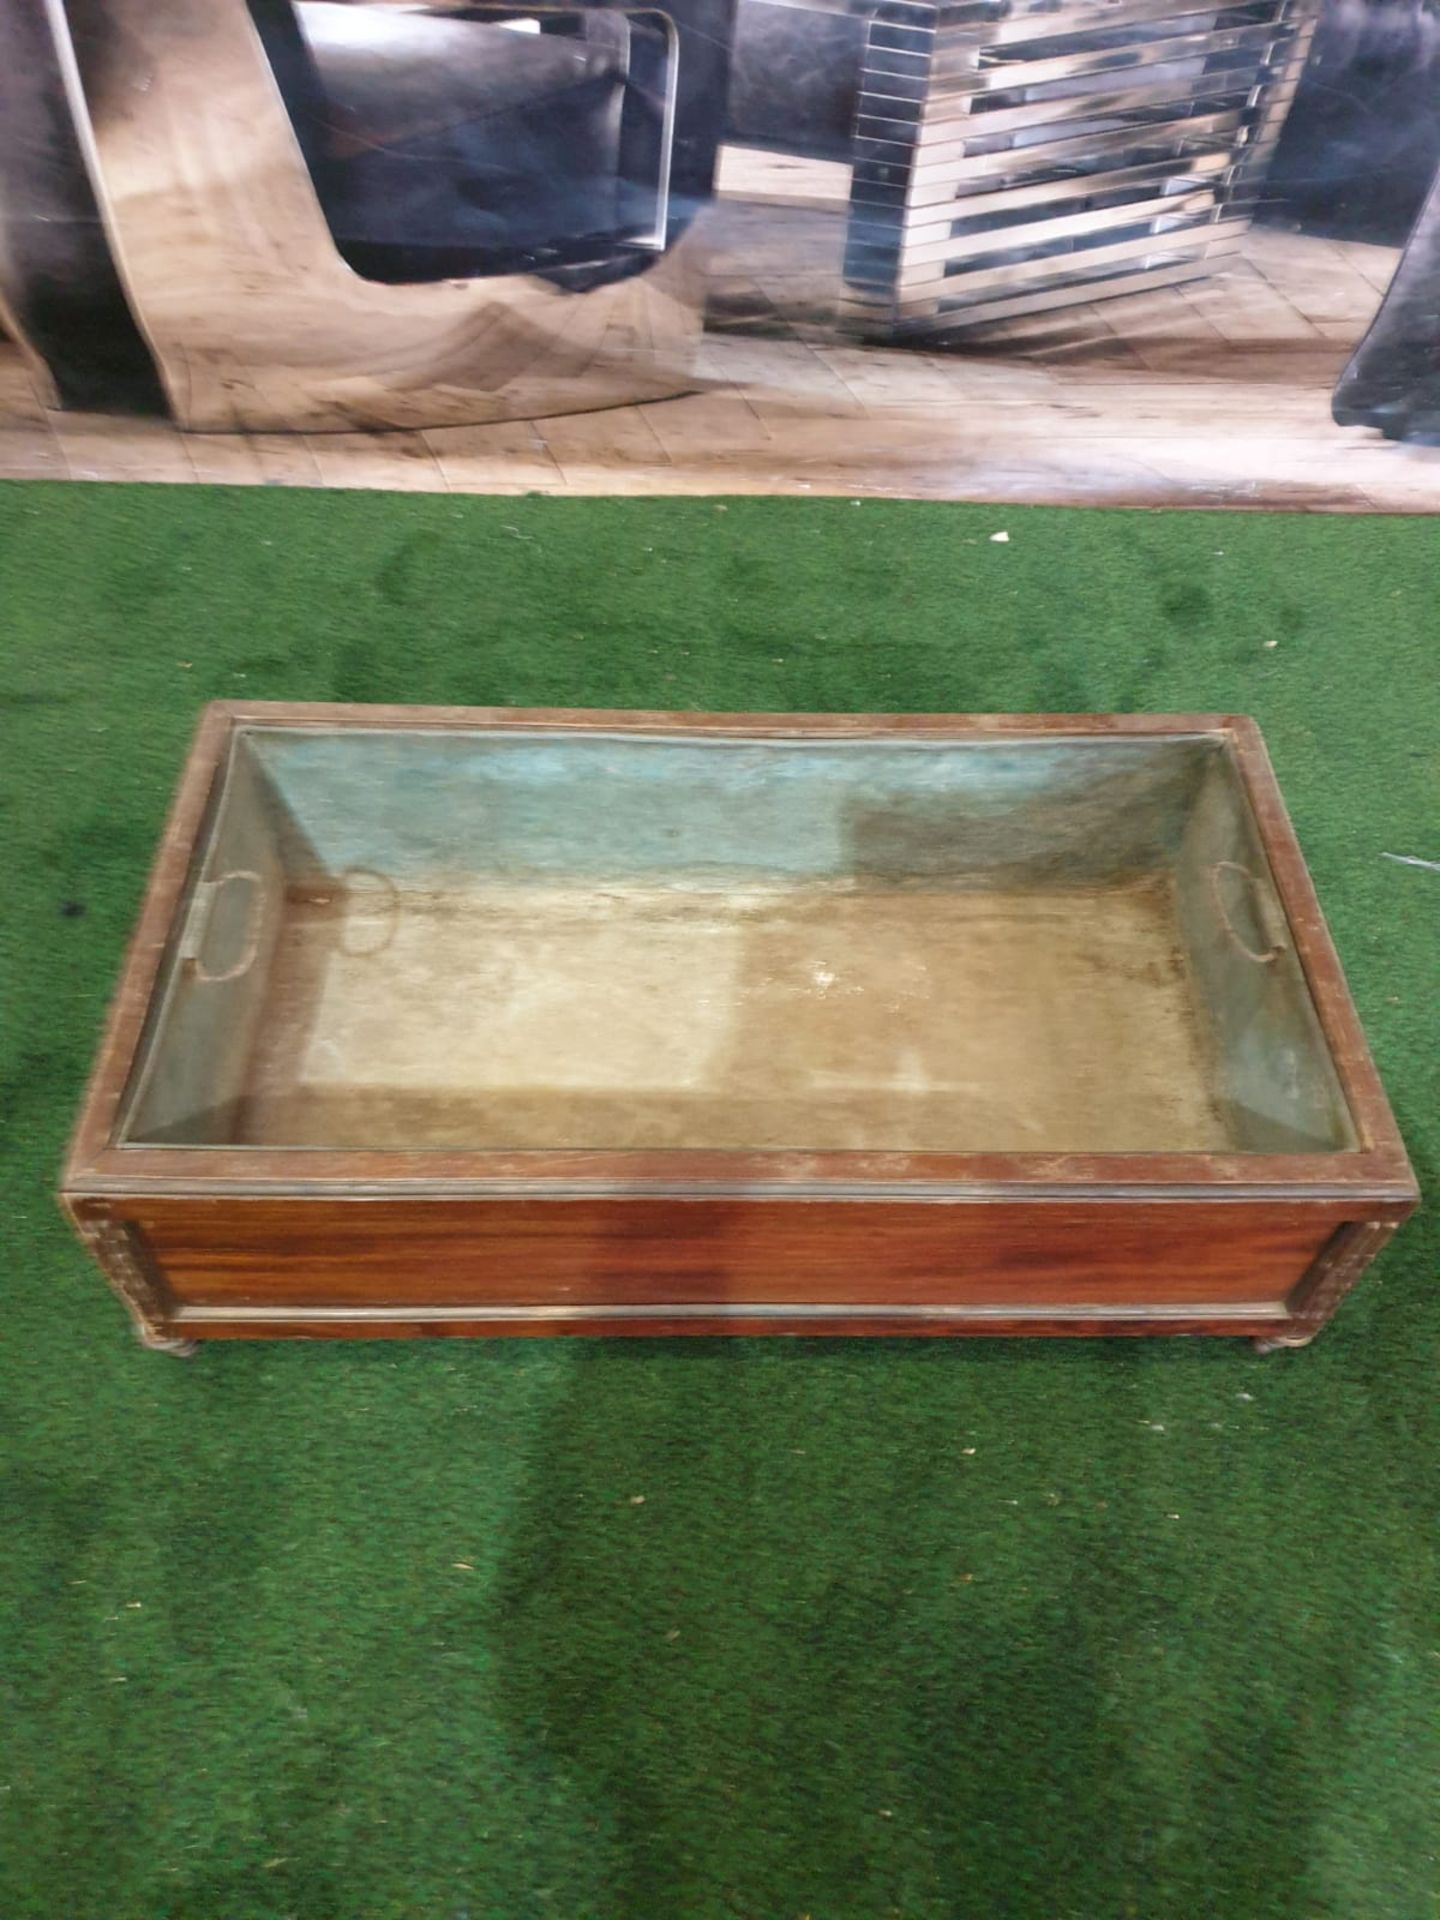 A Regency style Inlaid Mahogany Planter trough with original metal insert on shaped bun feet 65 x 35 - Image 3 of 4